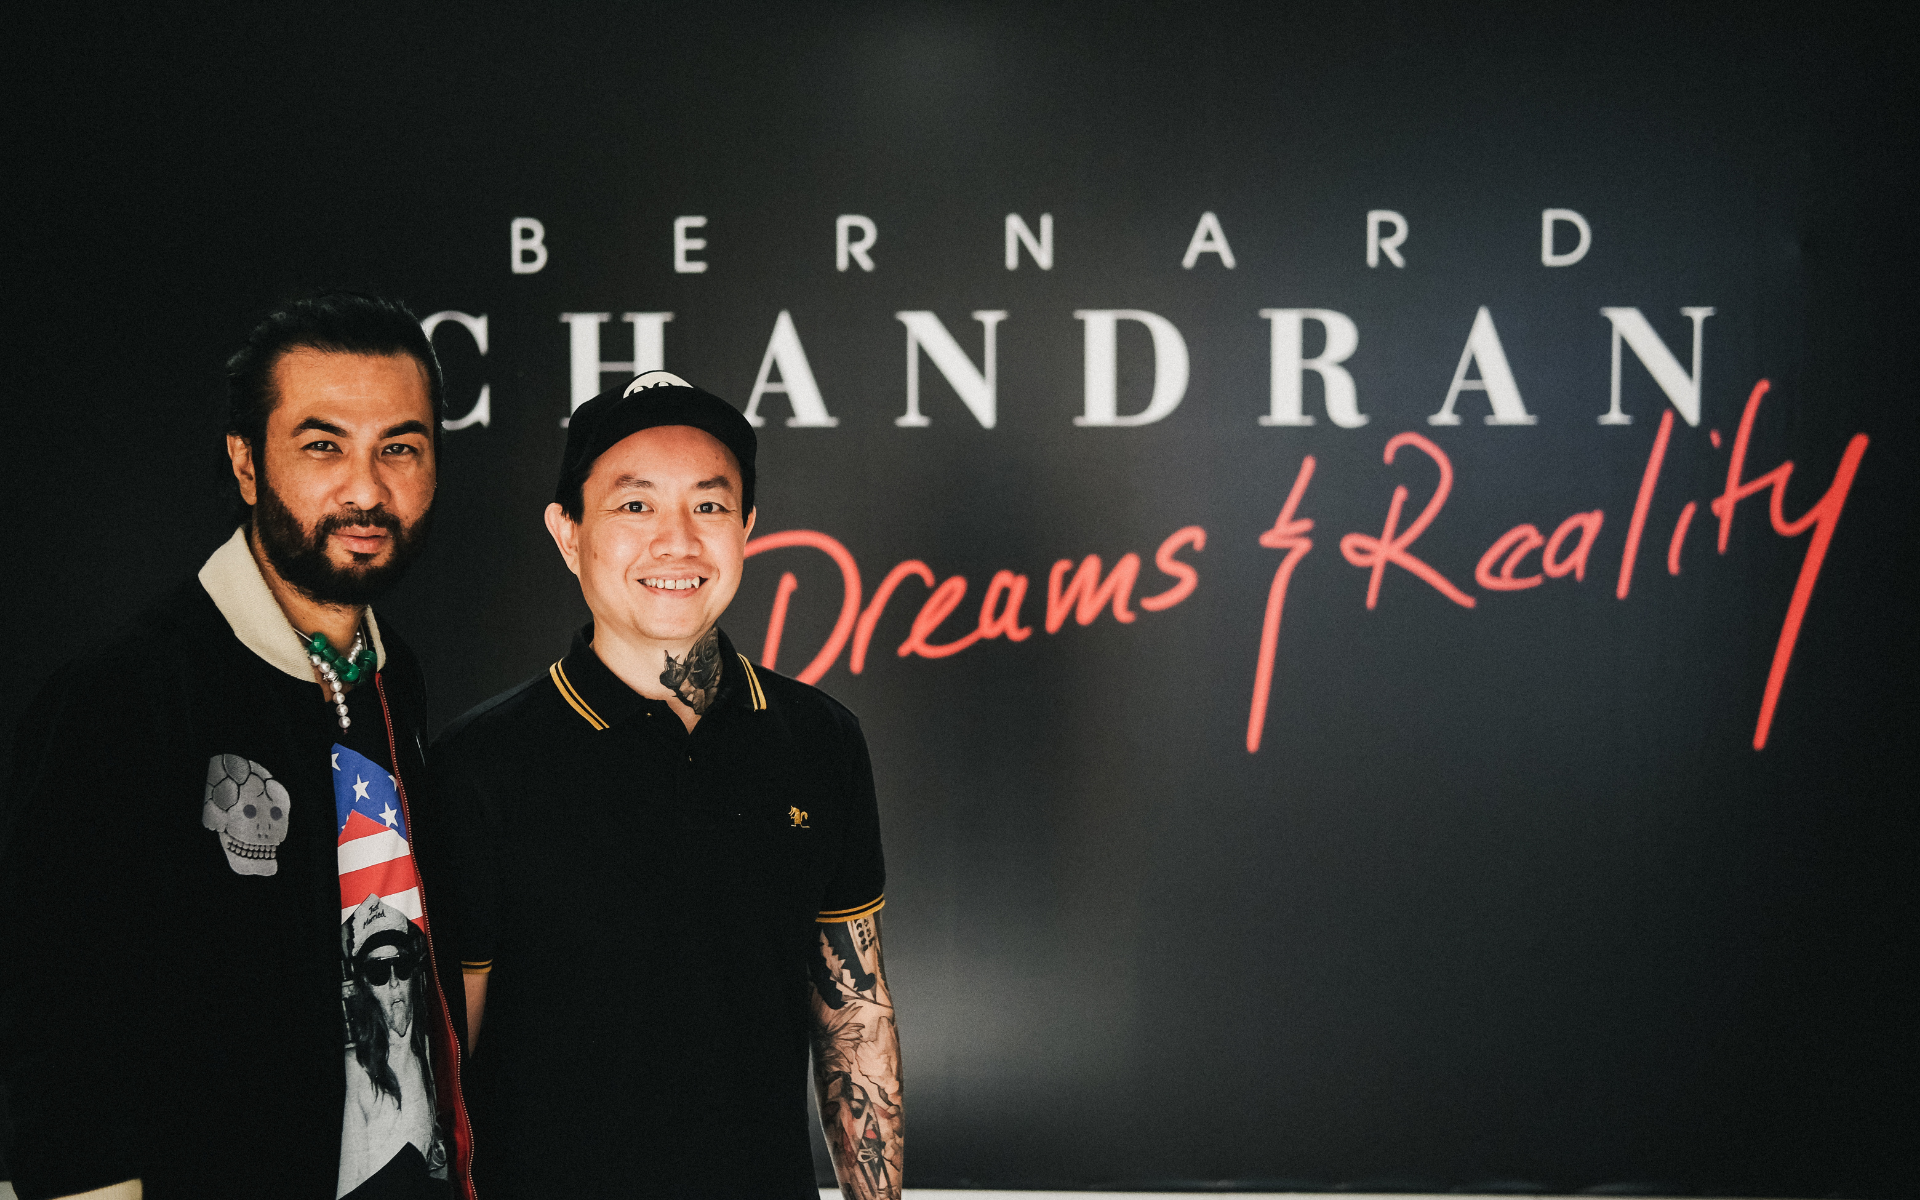 Bernard Chandran and Andrew Yap: The Story Behind The 'Dreams And Reality' Exhibition